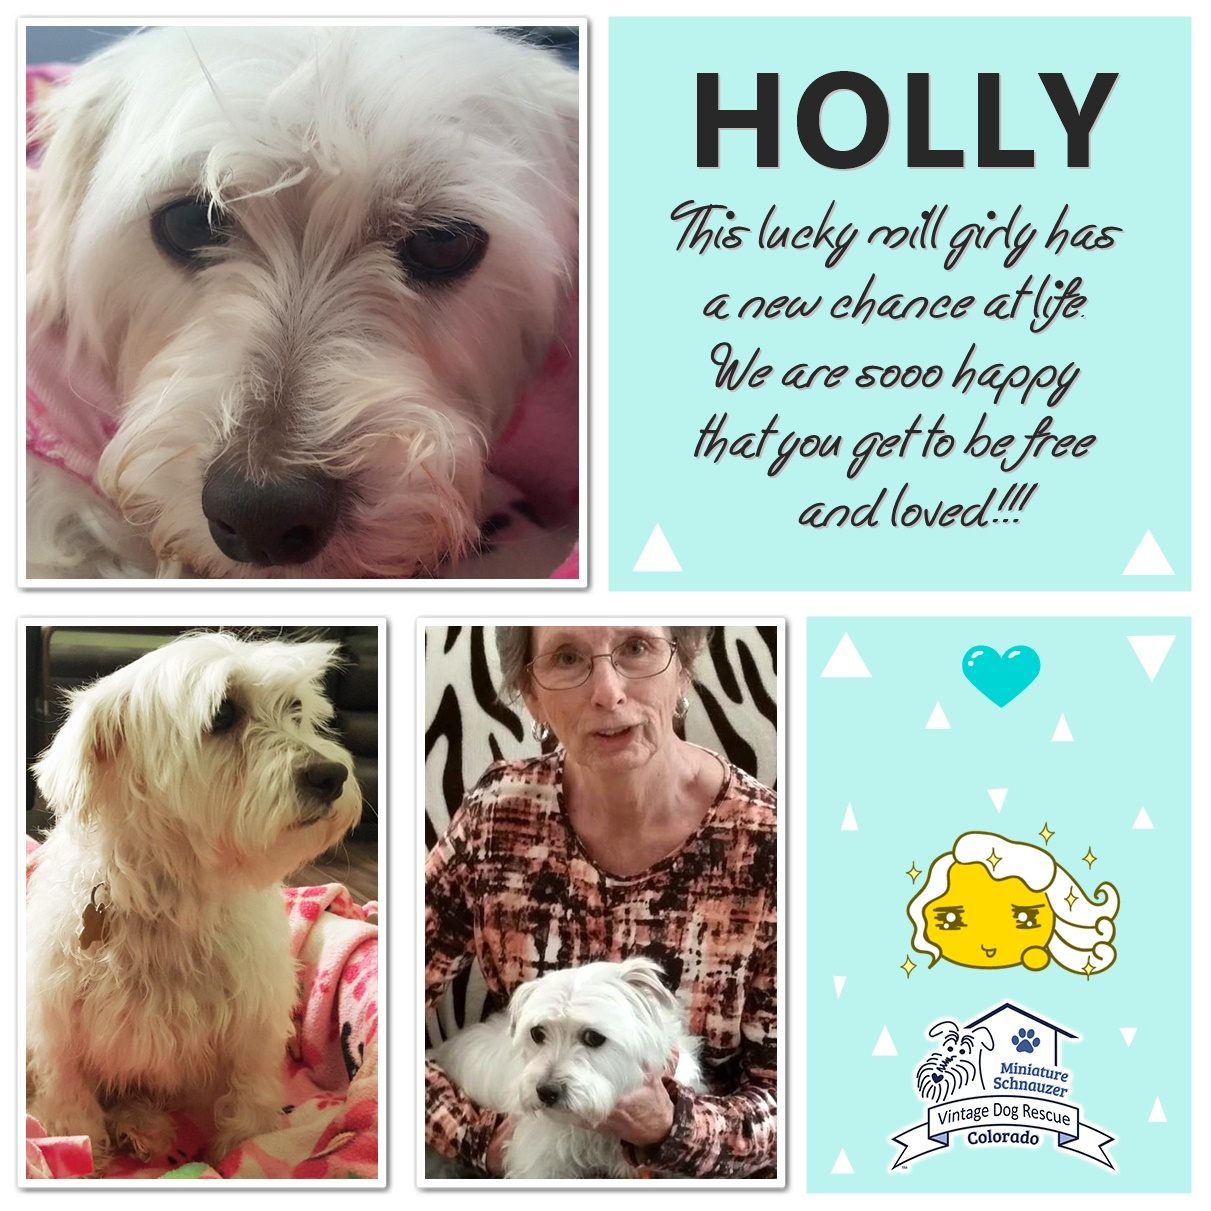 Holly was adopted!